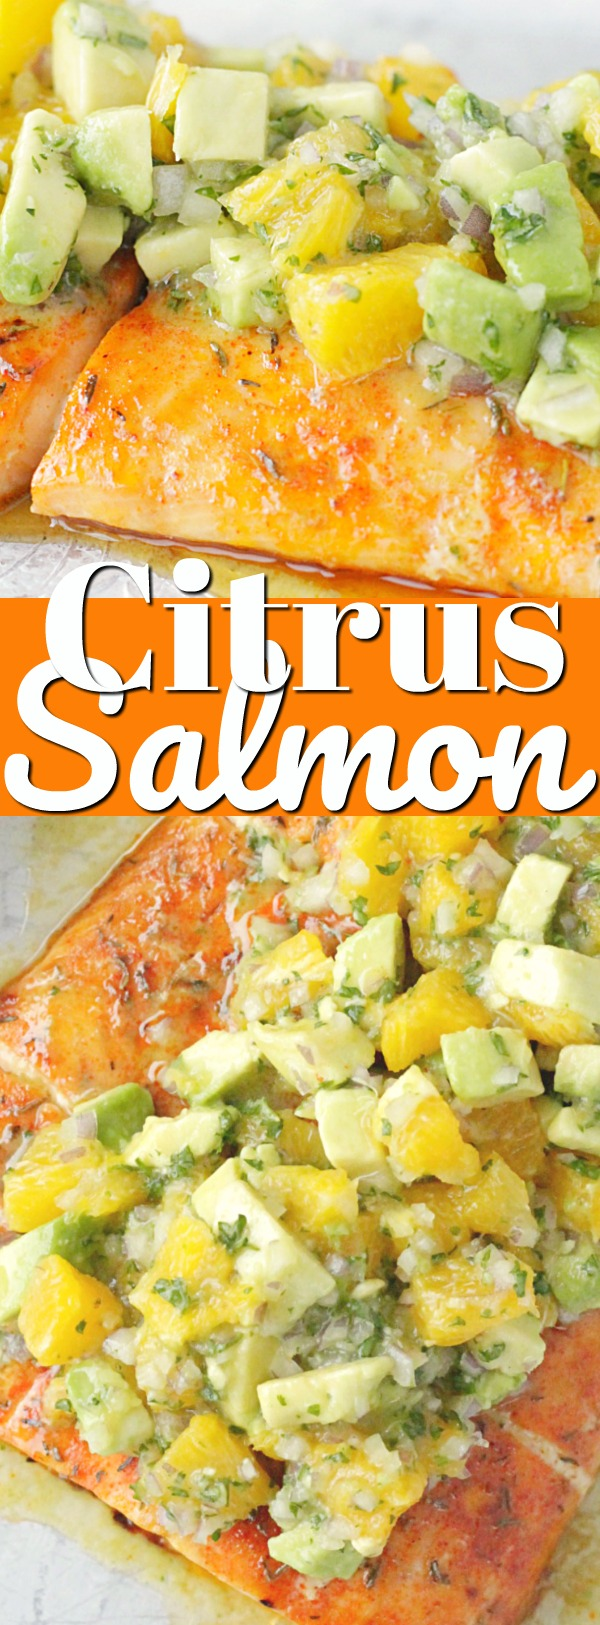 Citrus Salmon with Avocado Salsa | Foodtastic Mom